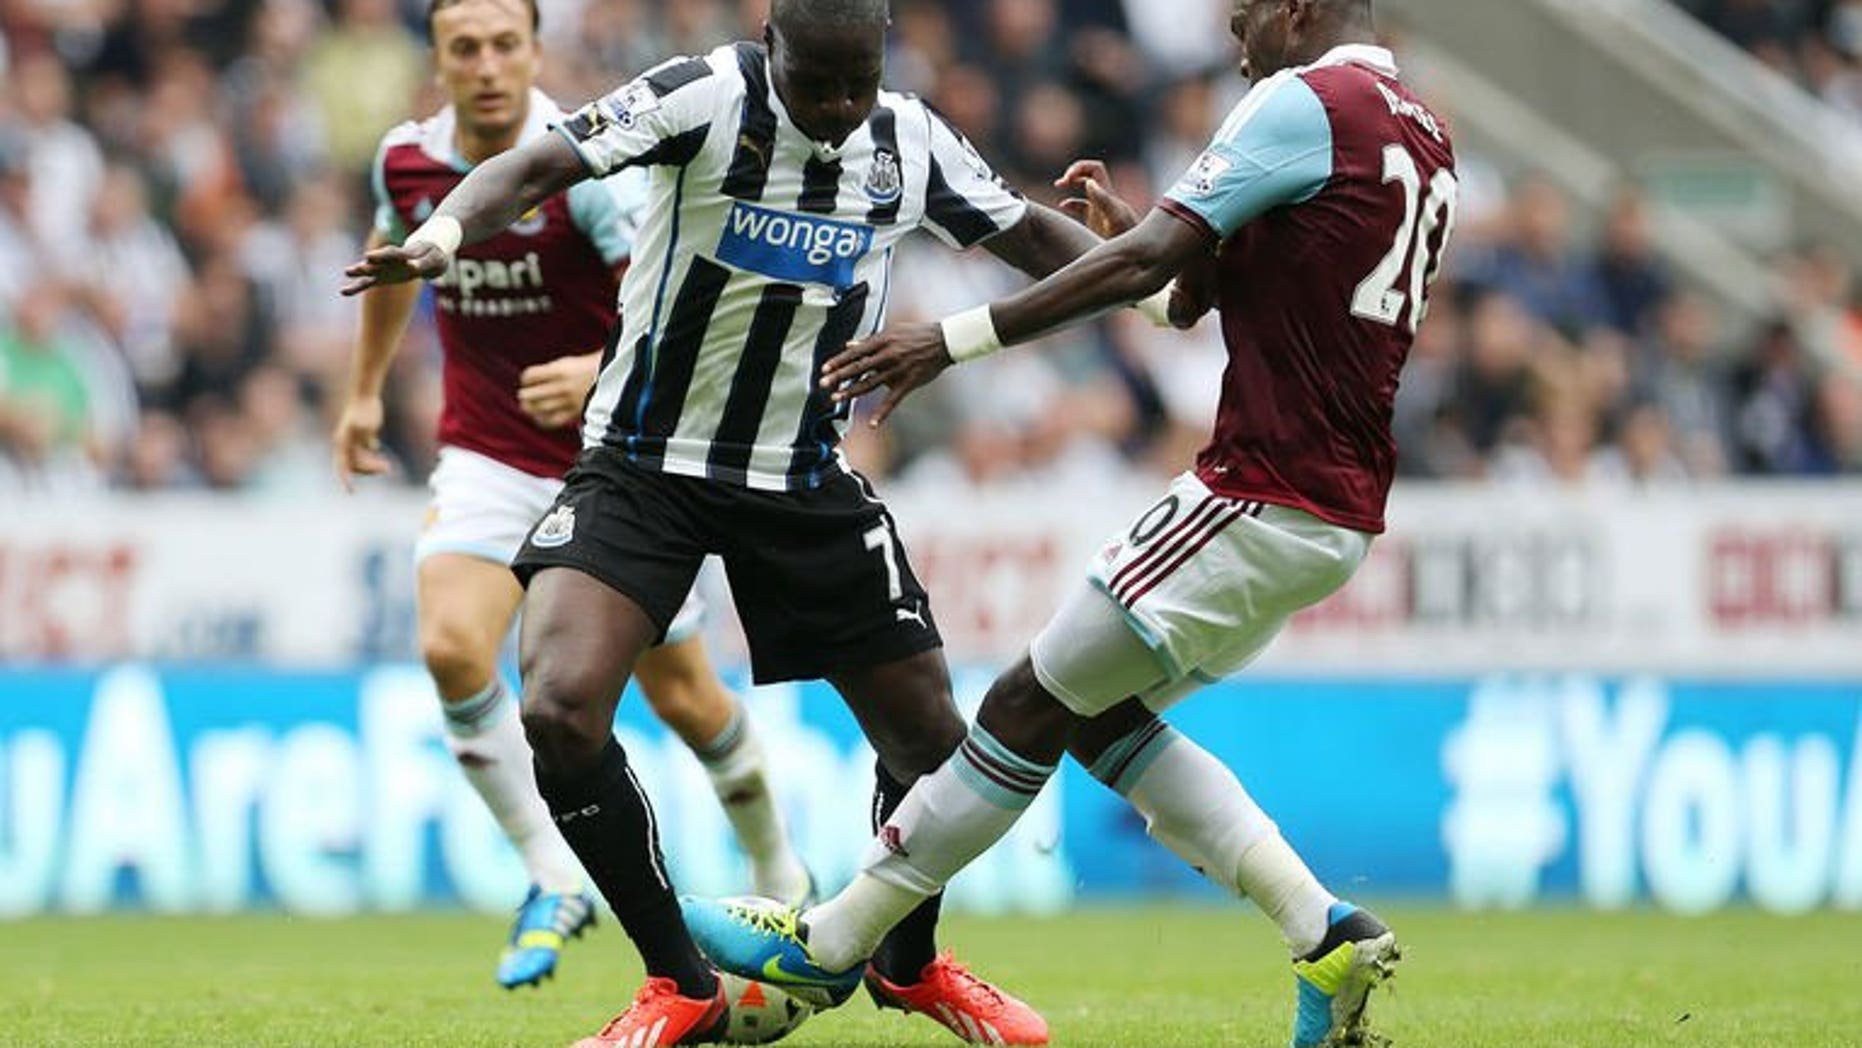 Newcastle United's French midfielder Moussa Sissoko (L) vies with West Ham United's Ivorian defender Guy Demel (R) during the English Premier League football match between Newcastle United and West Ham United at St James' Park in Newcastle, on August 24, 2013. Newcastle secured their first point of the season with a 0-0 home draw.